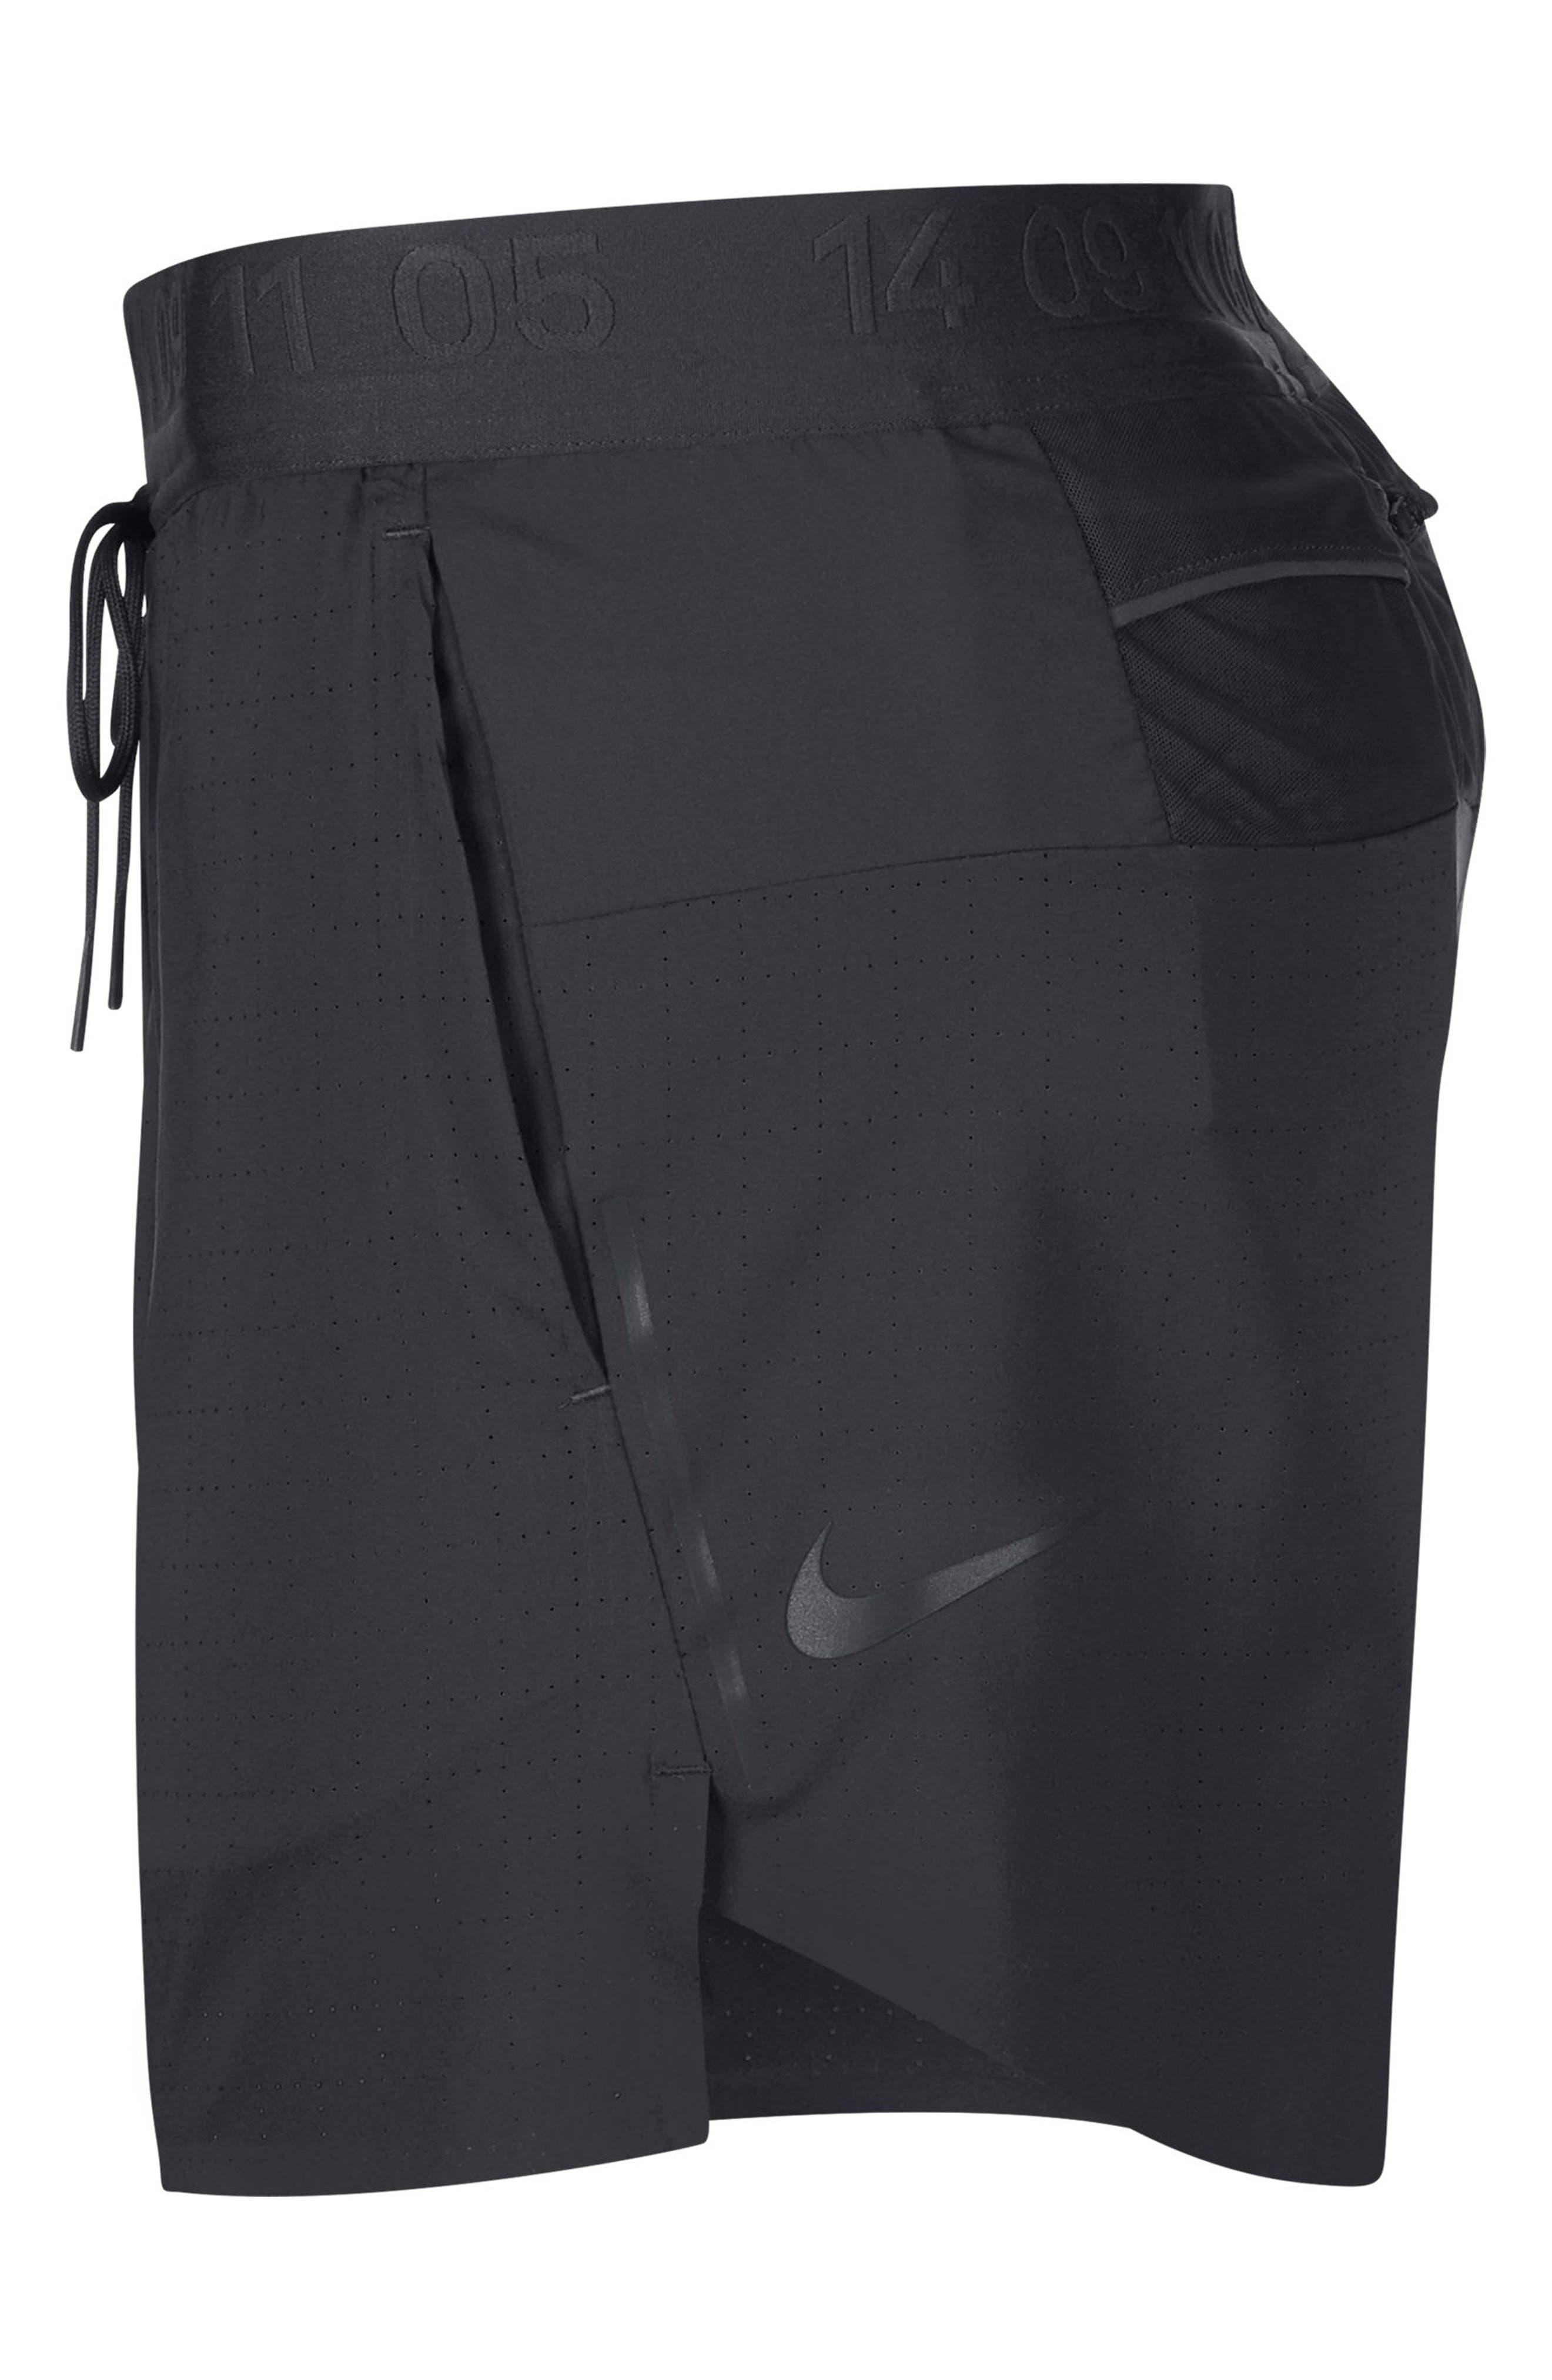 Running Shorts,                             Alternate thumbnail 8, color,                             ANTHRACITE/ ANTHRACITE